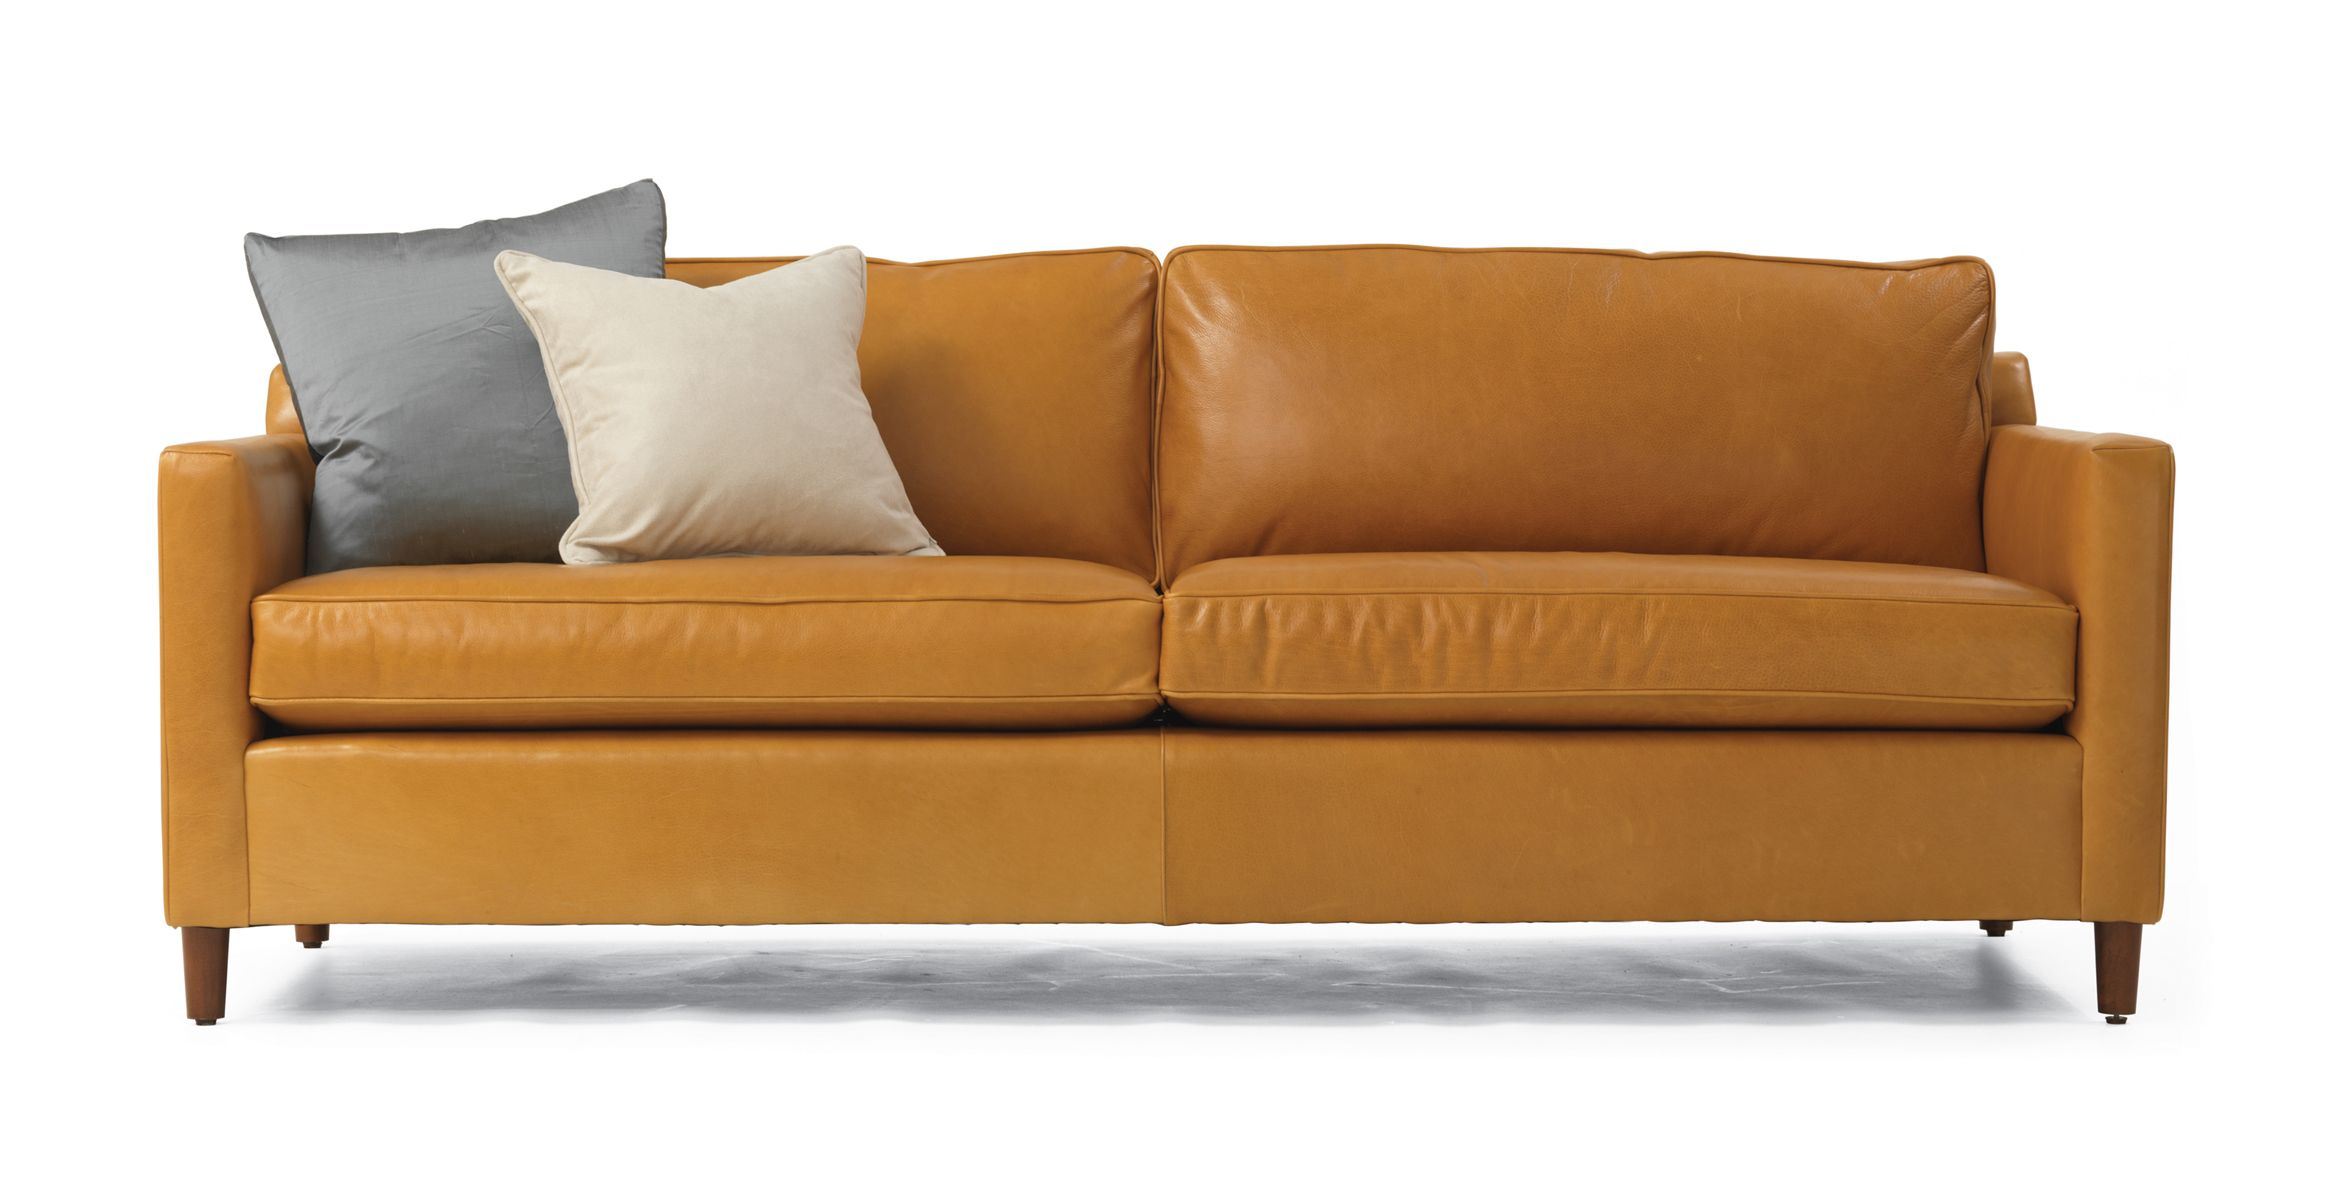 single sofa bed gold coast dwell pisa leather now who does not love a